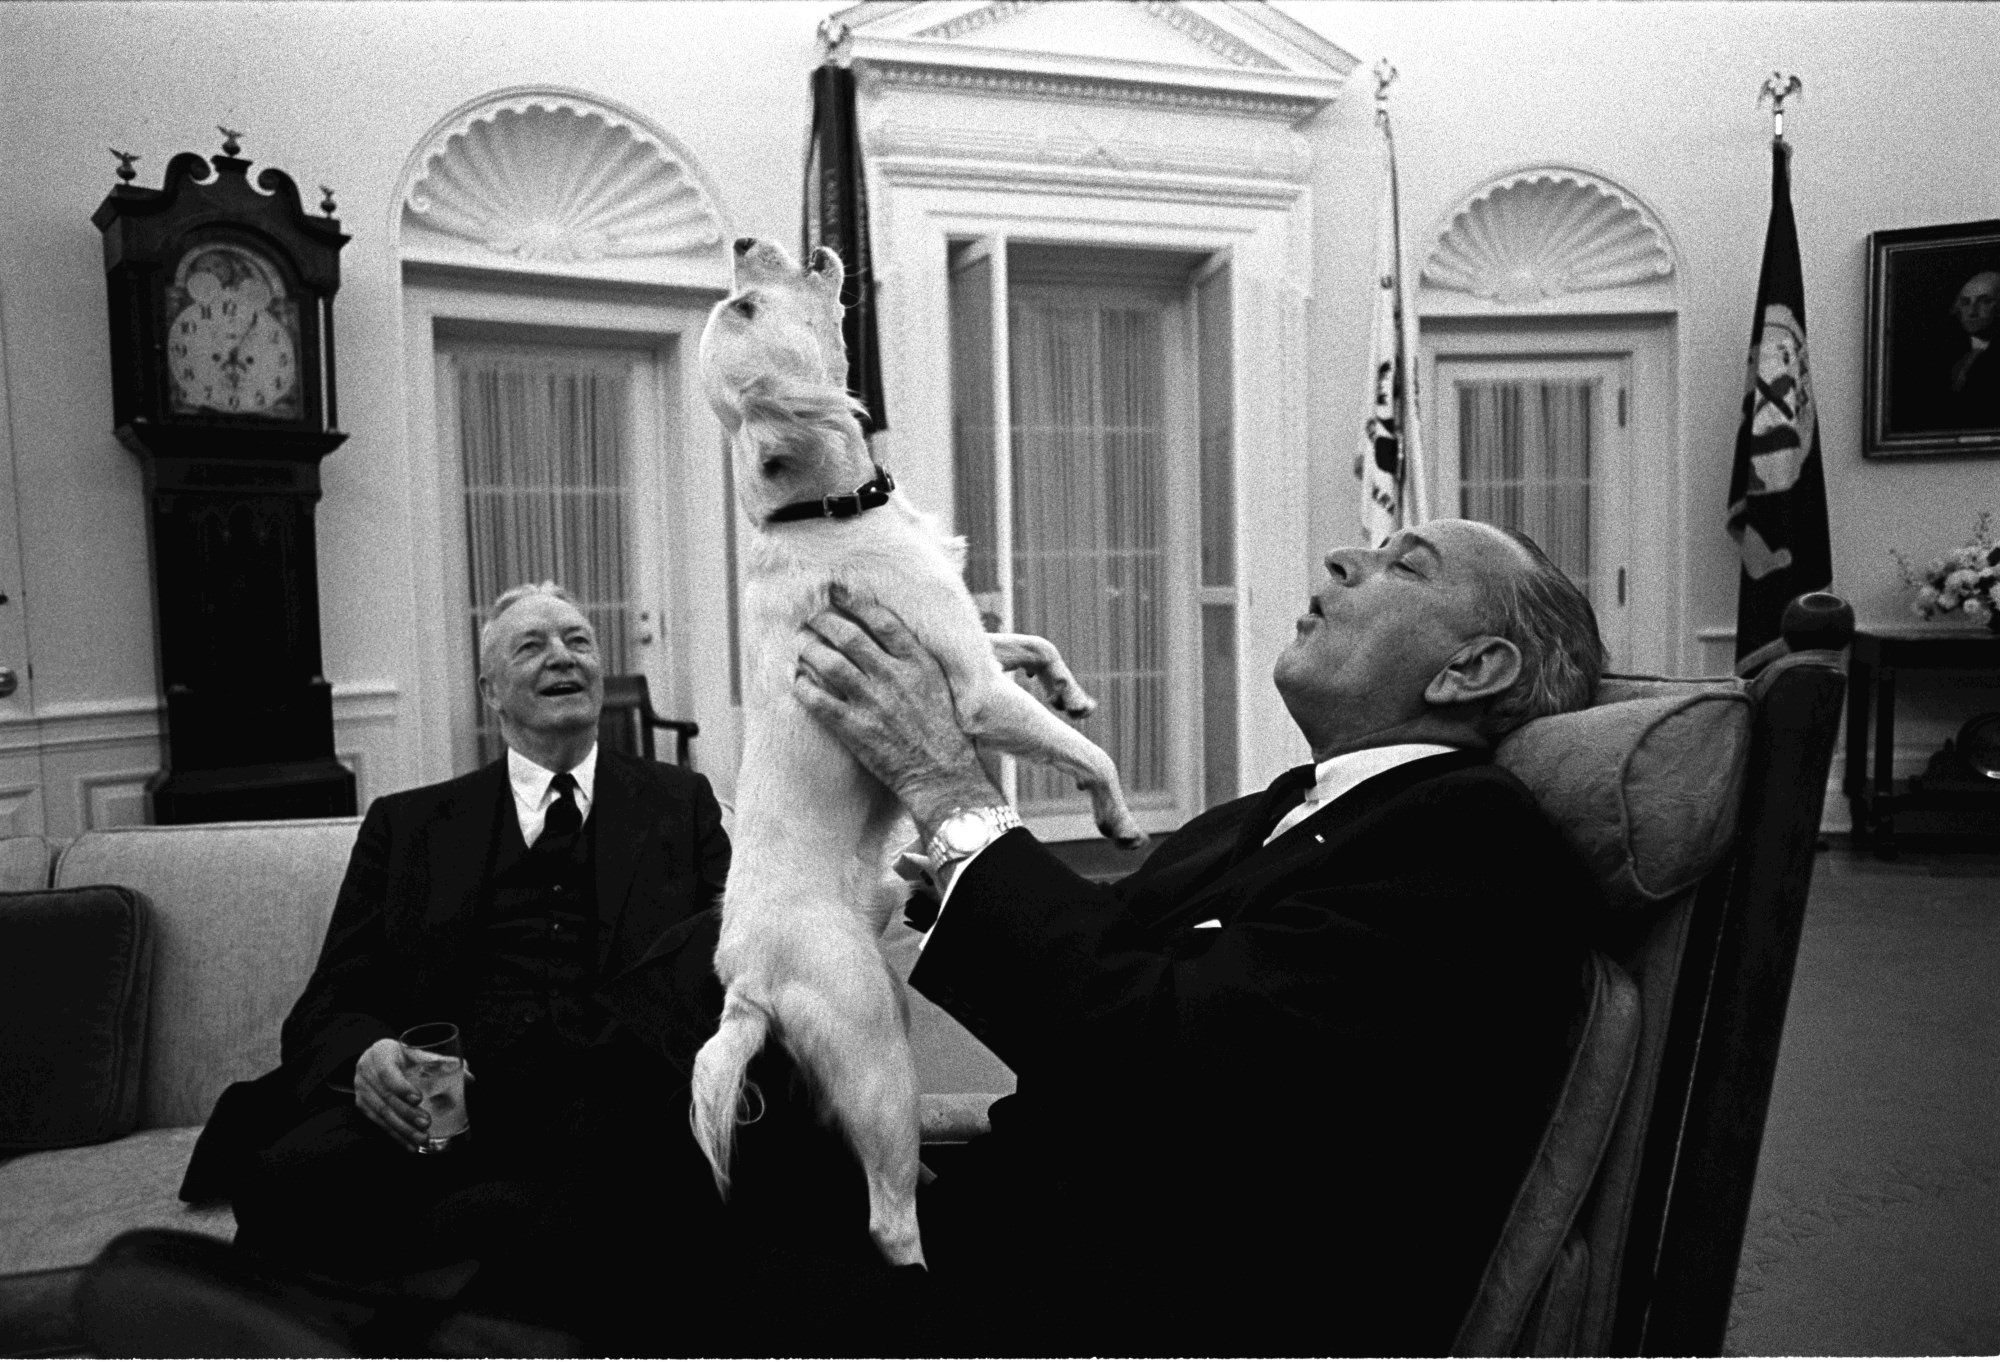 oval office history. LBJ Sings With His Dog Yuki In The Oval Office. February 1968.] Office History